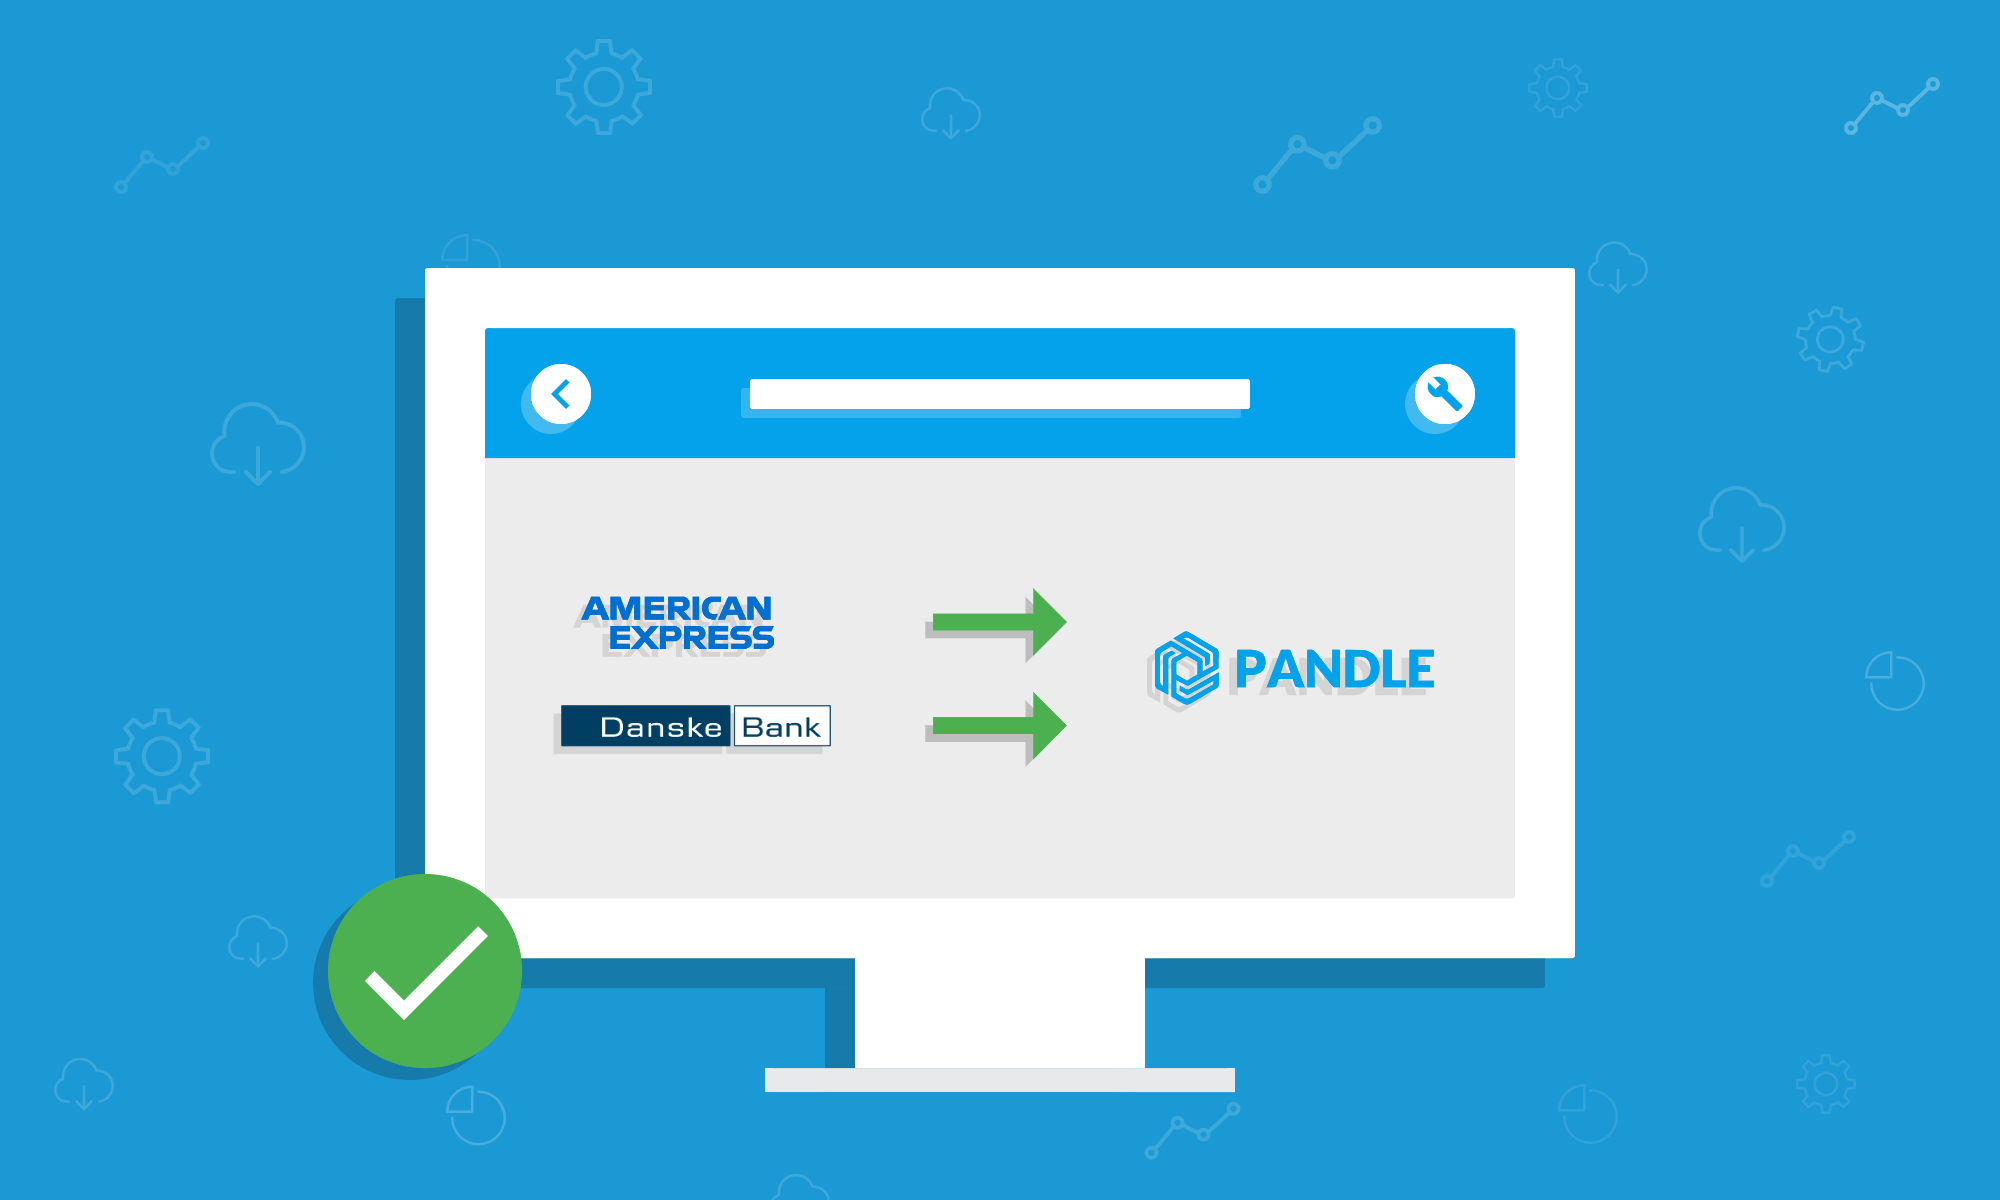 Pandle Launches Bank Feeds for American Express and Danske Bank